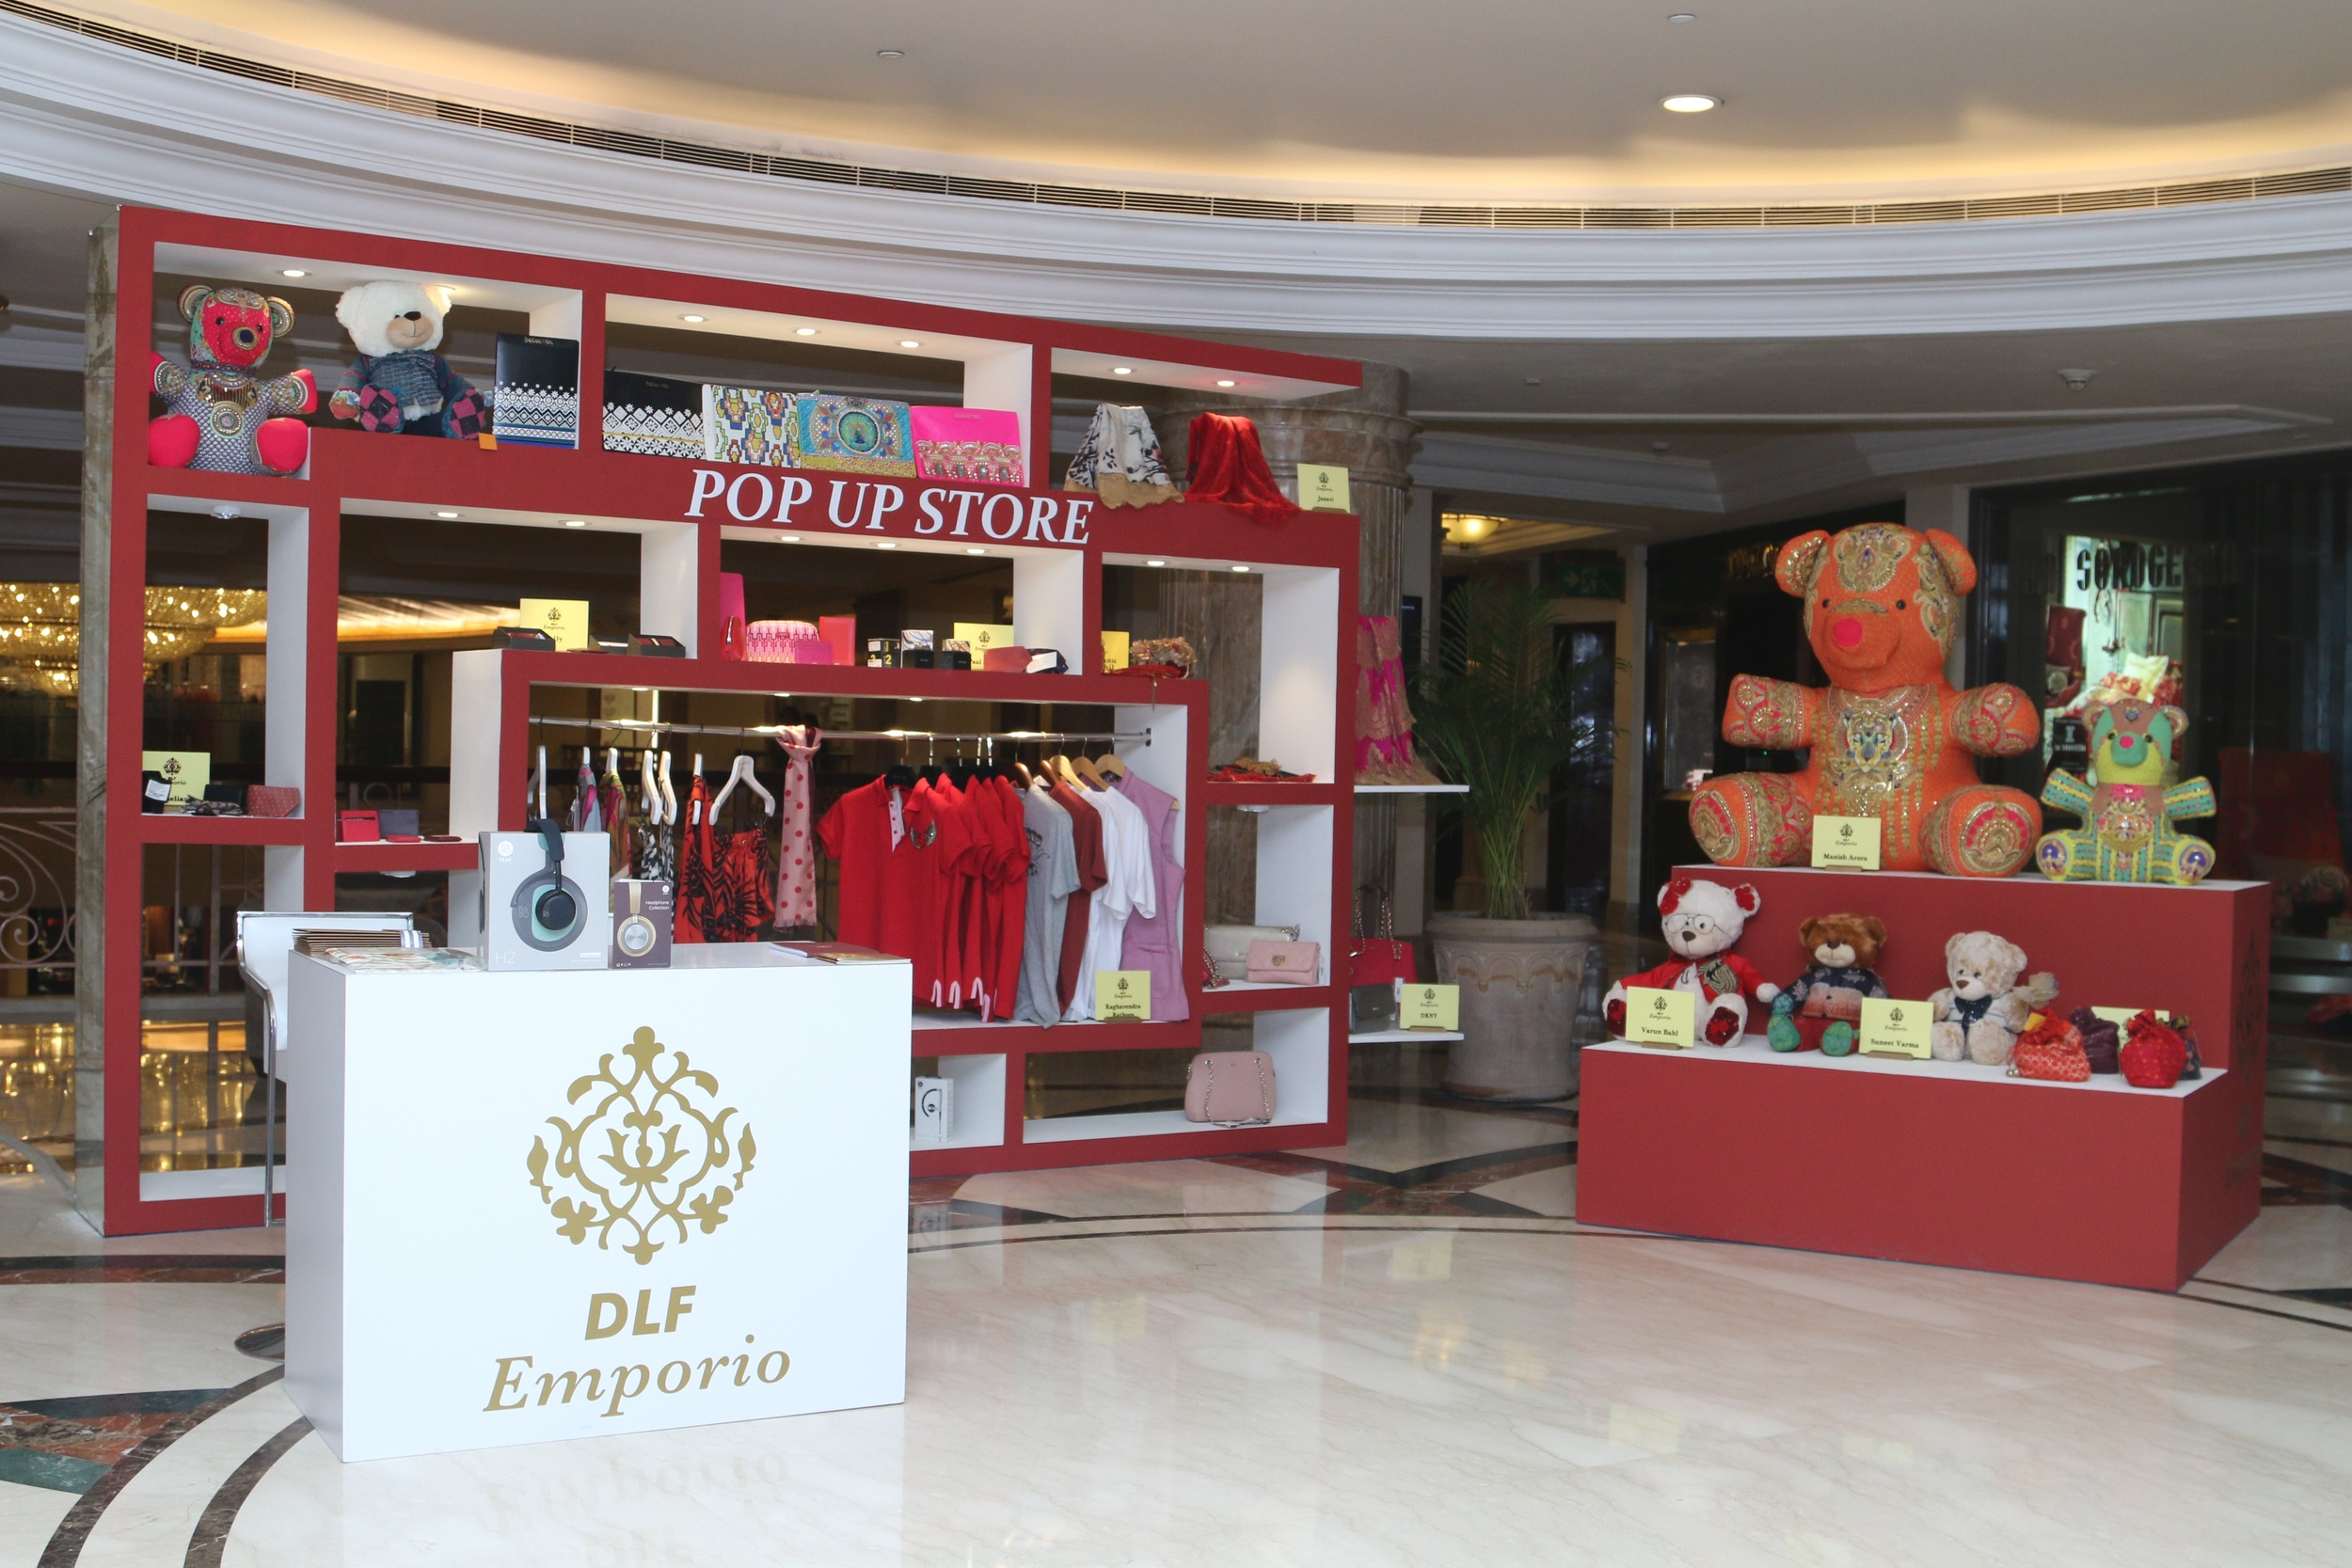 'Made With Love'a stunning pop up store, designer teddy bears and gifts from India's leading fashion designers at DLF Emporio in New Delhi